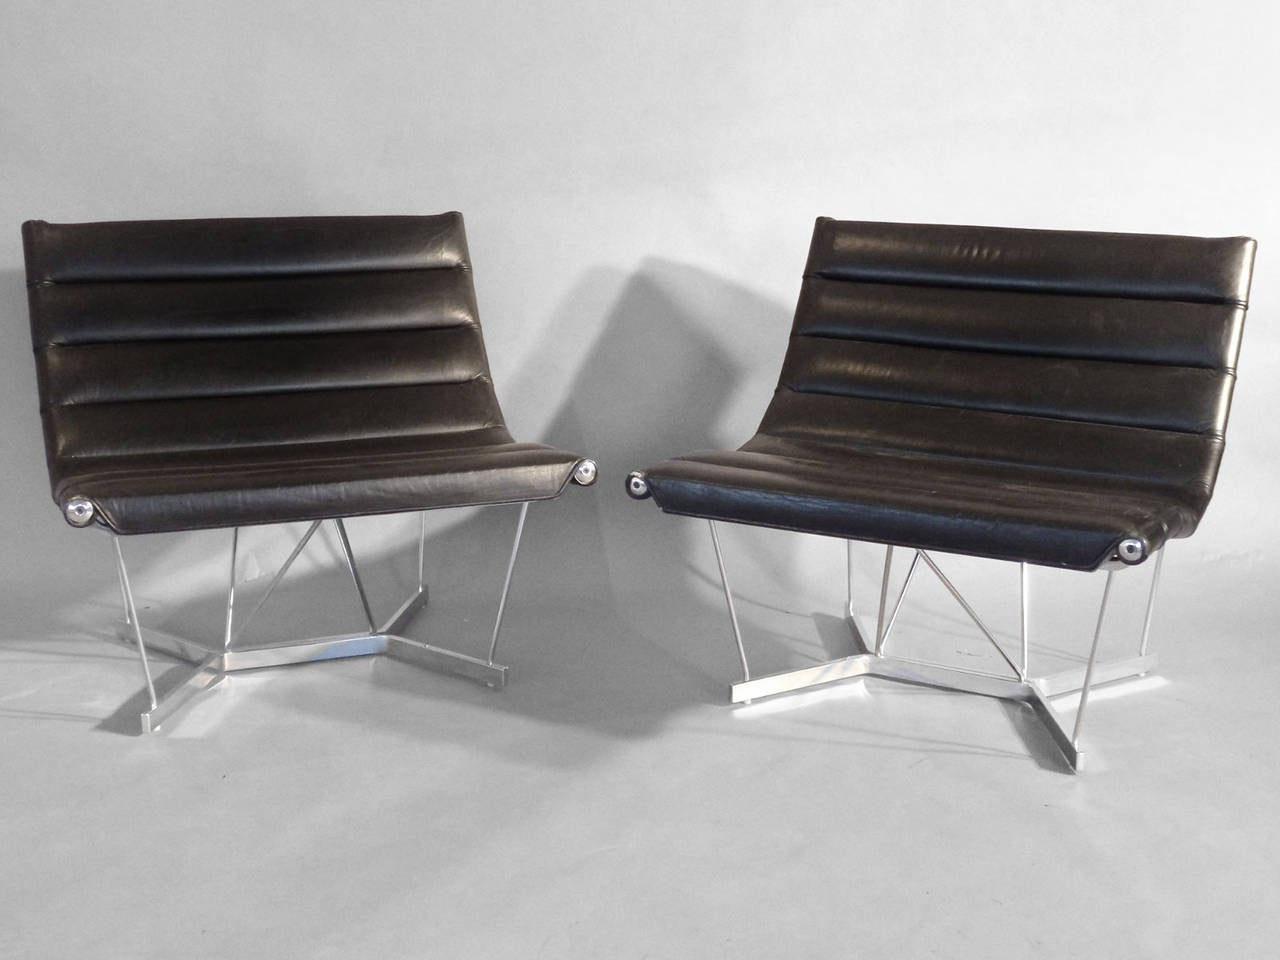 Scarce Pair of George Nelson Chrome Base Leather Catenary Chairs 5